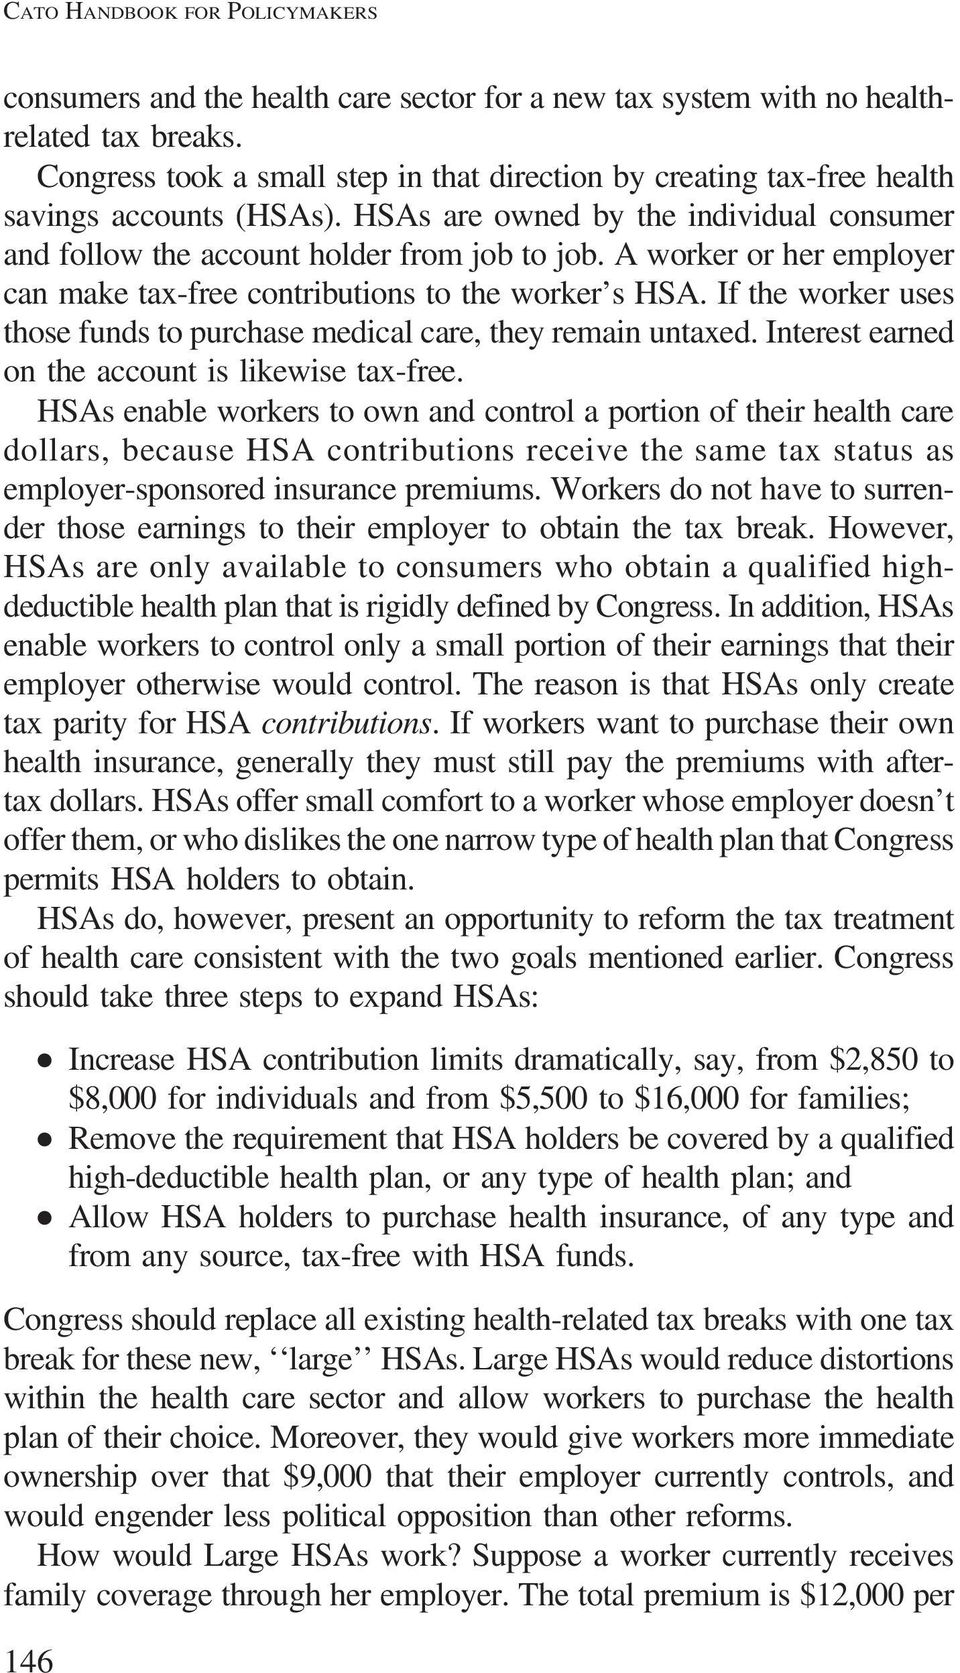 A worker or her employer can make tax-free contributions to the worker s HSA. If the worker uses those funds to purchase medical care, they remain untaxed.